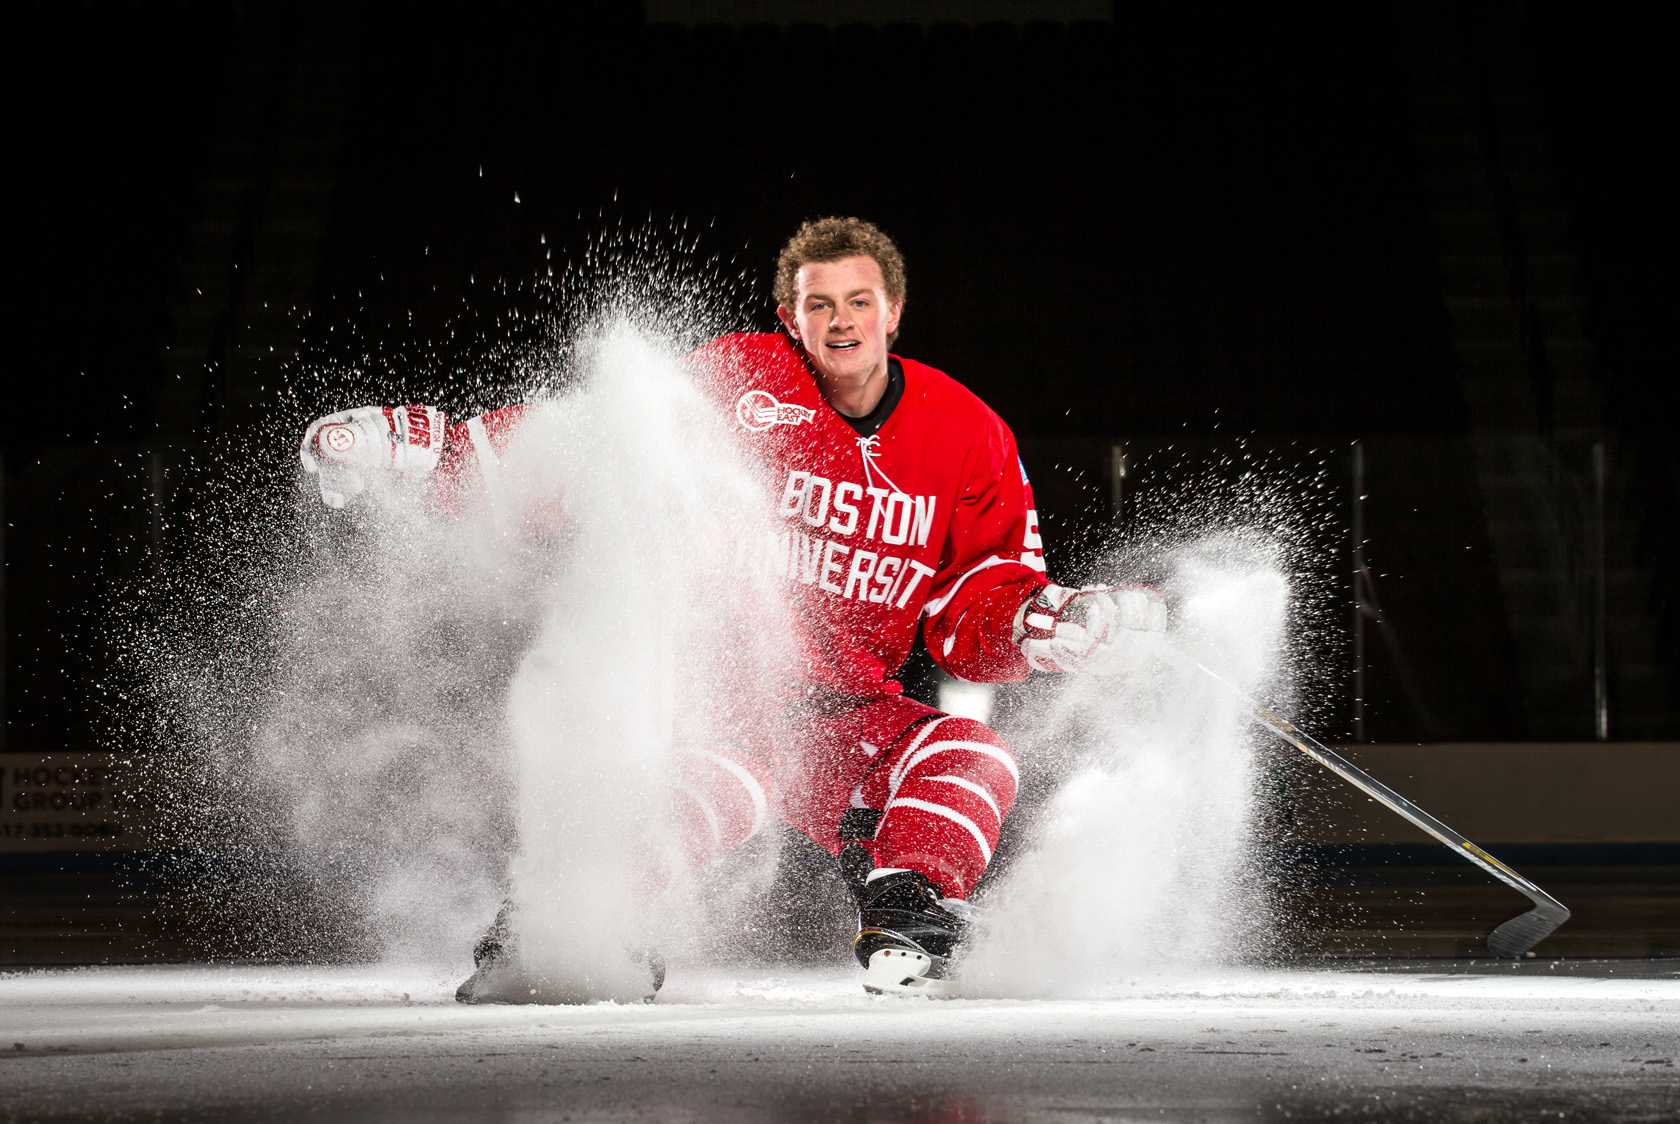 Boston University hockey player Jack Eichel hockey stops  spray for a portrait.